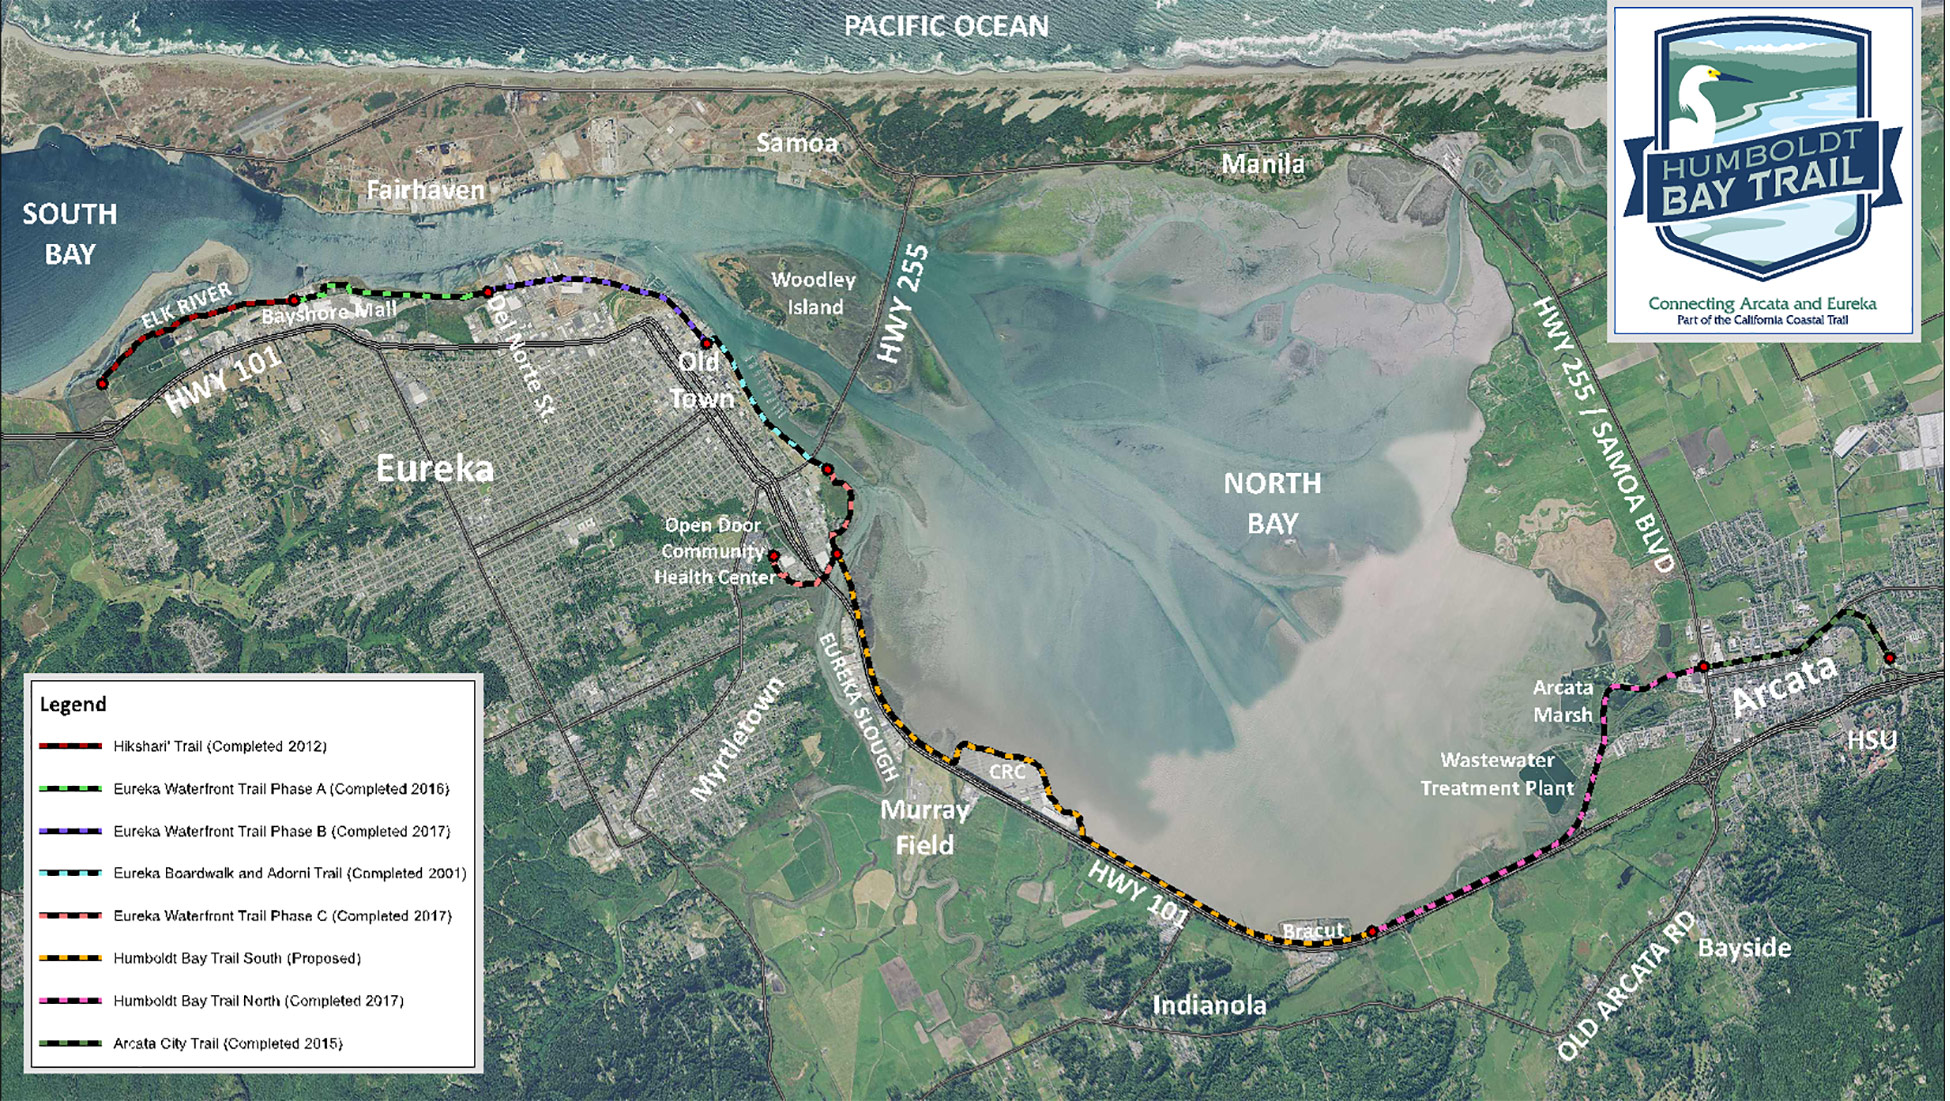 humboldt bay trail map